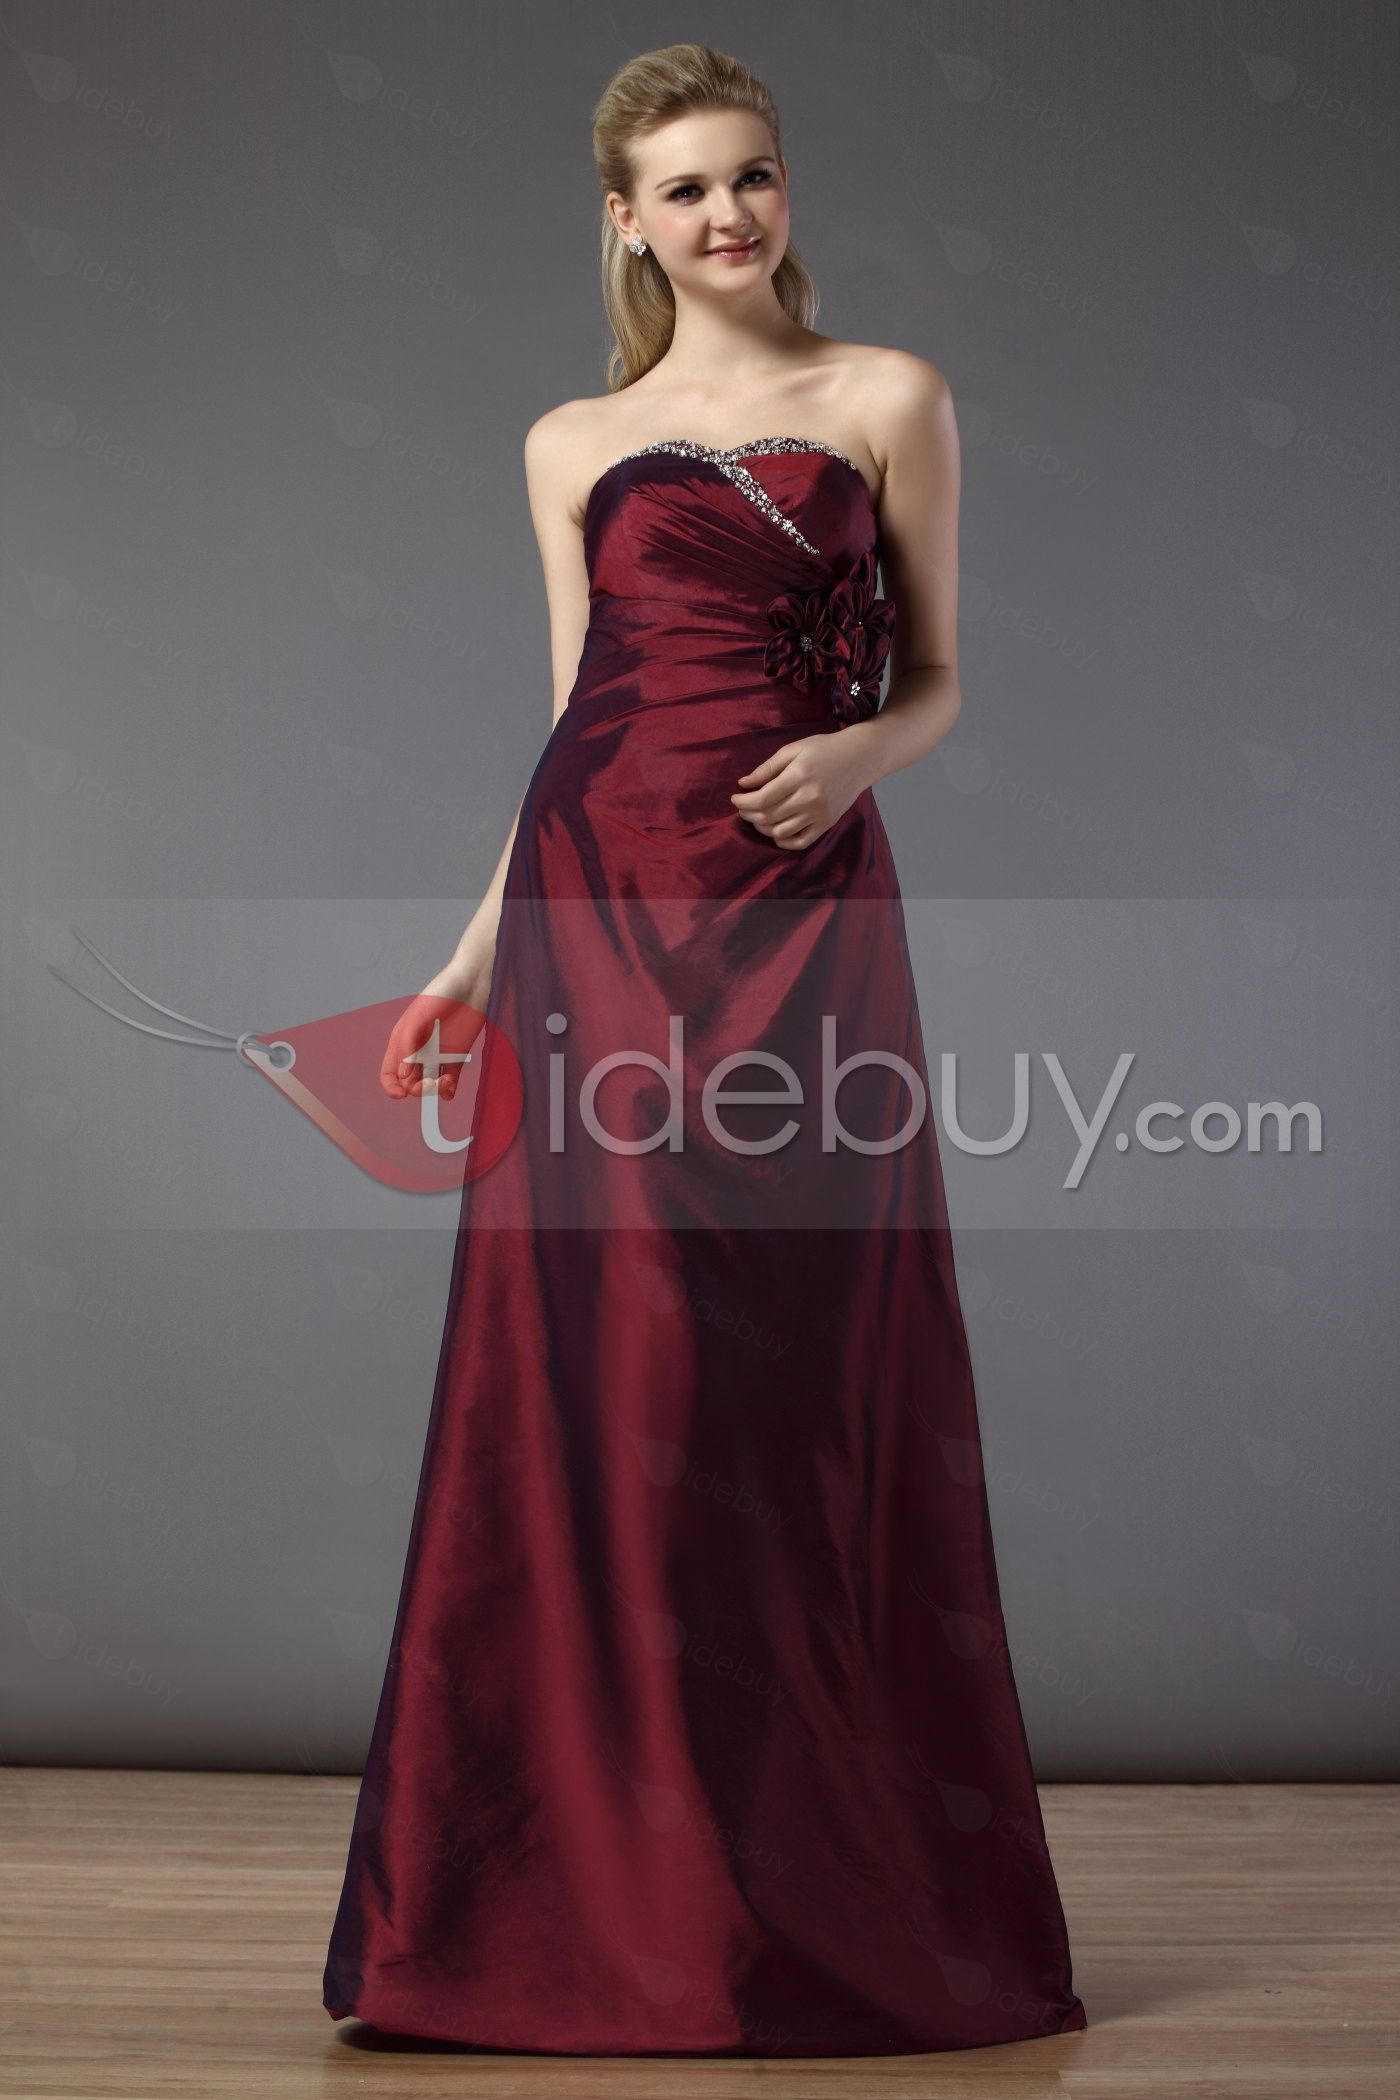 #Sweetheart #Popular #Neckline Charming A-line Sweetheart Neckline Floor-Length Bridesmaid Dress